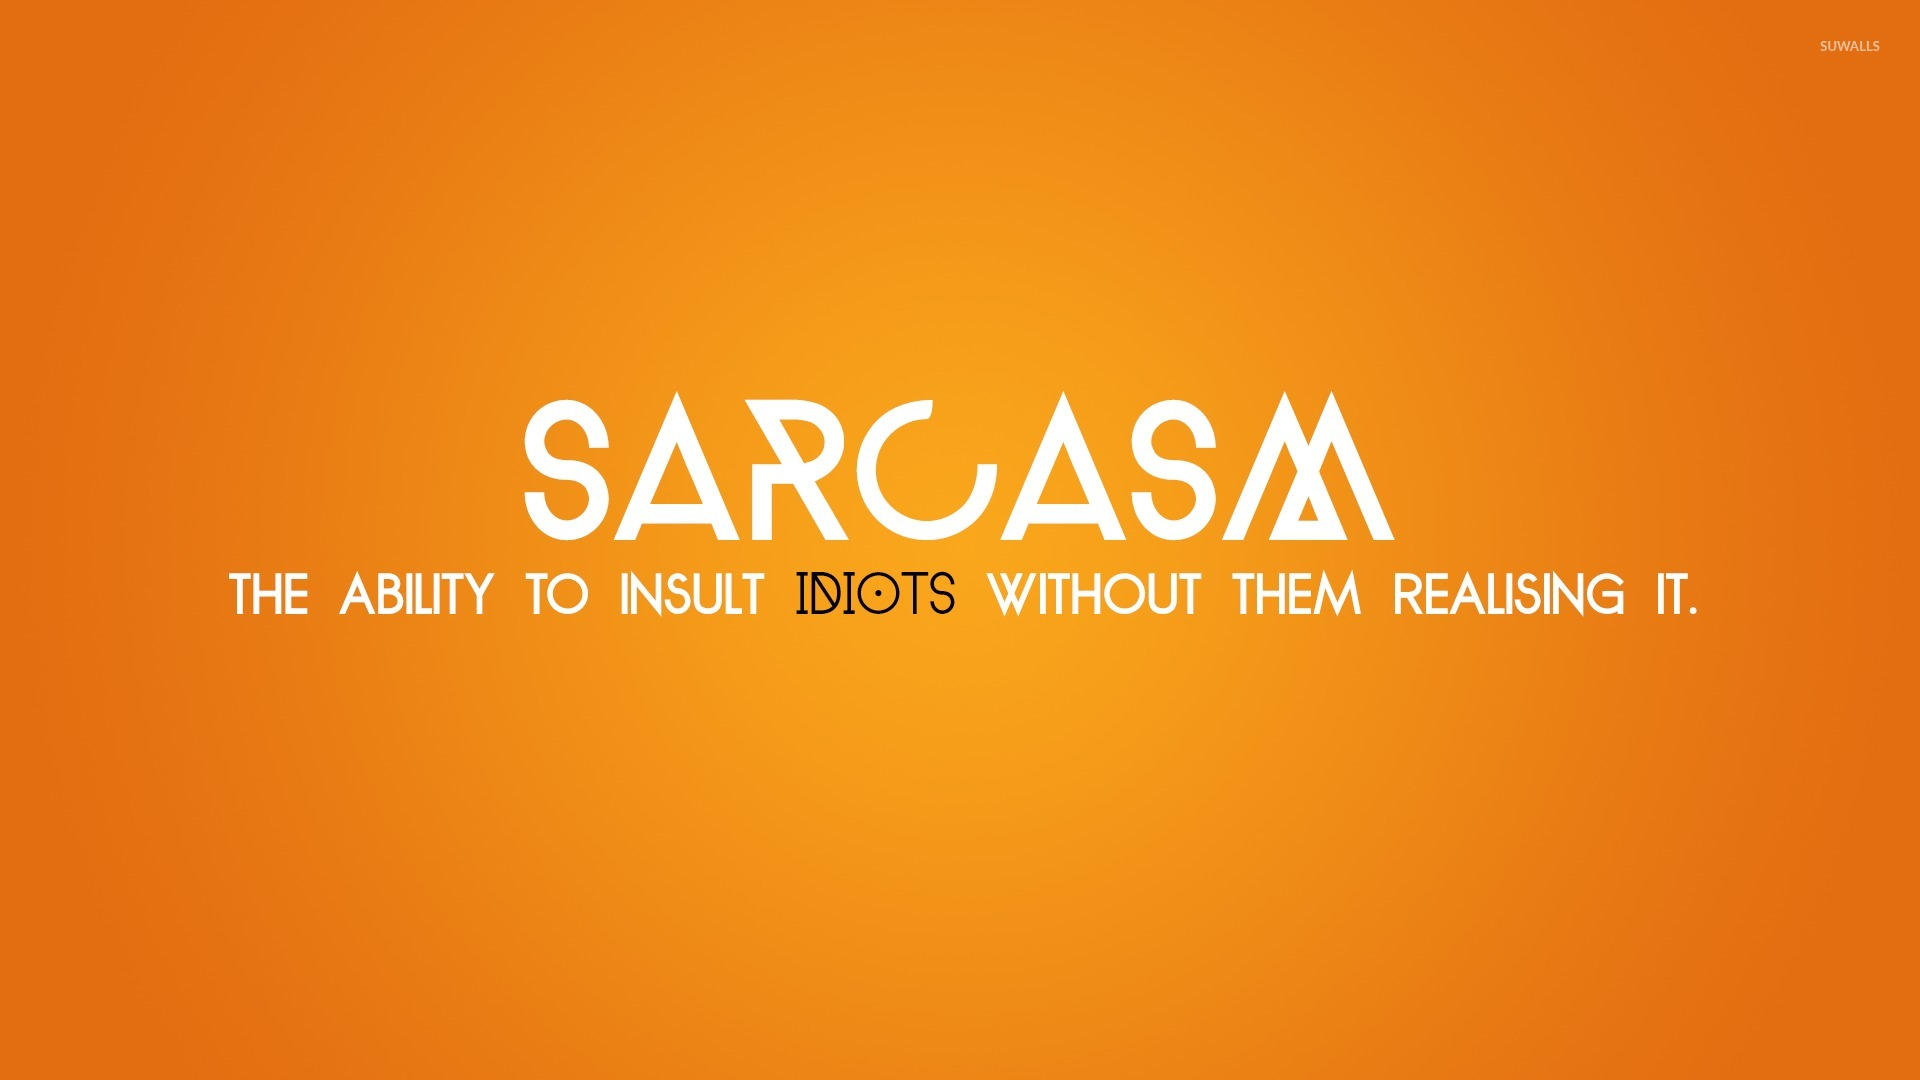 Sarcasm wallpaper   Typography wallpapers   23540 1366x768